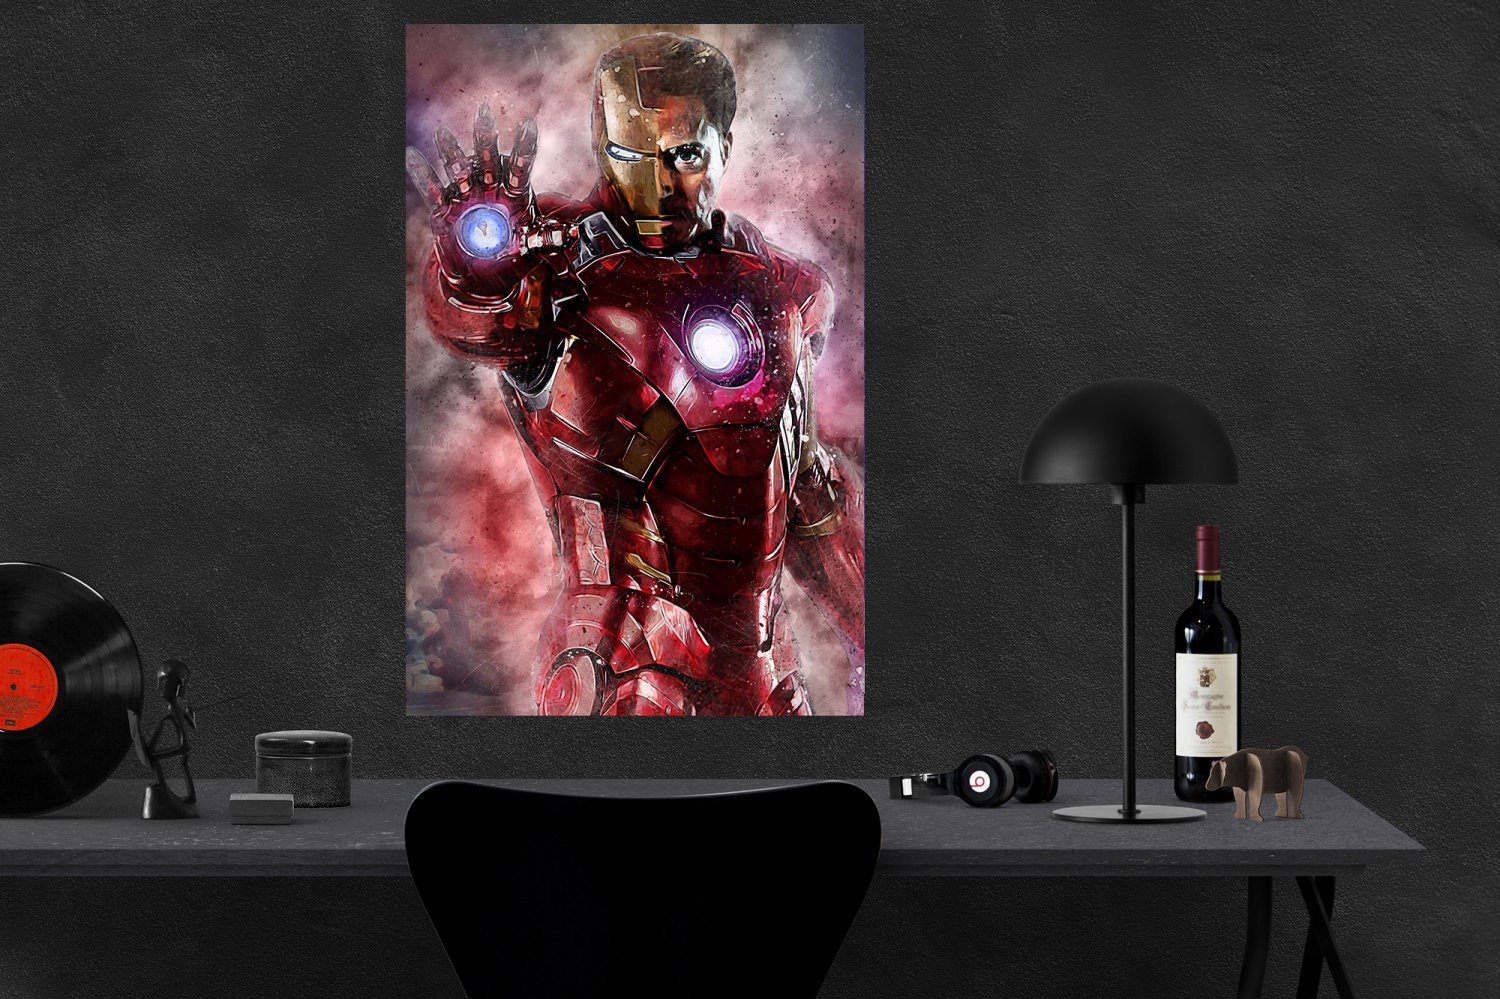 Avengers Endgame, Iron Man, Tony Stark, Robert Downey Jr,  13x19 inches Canvas Print